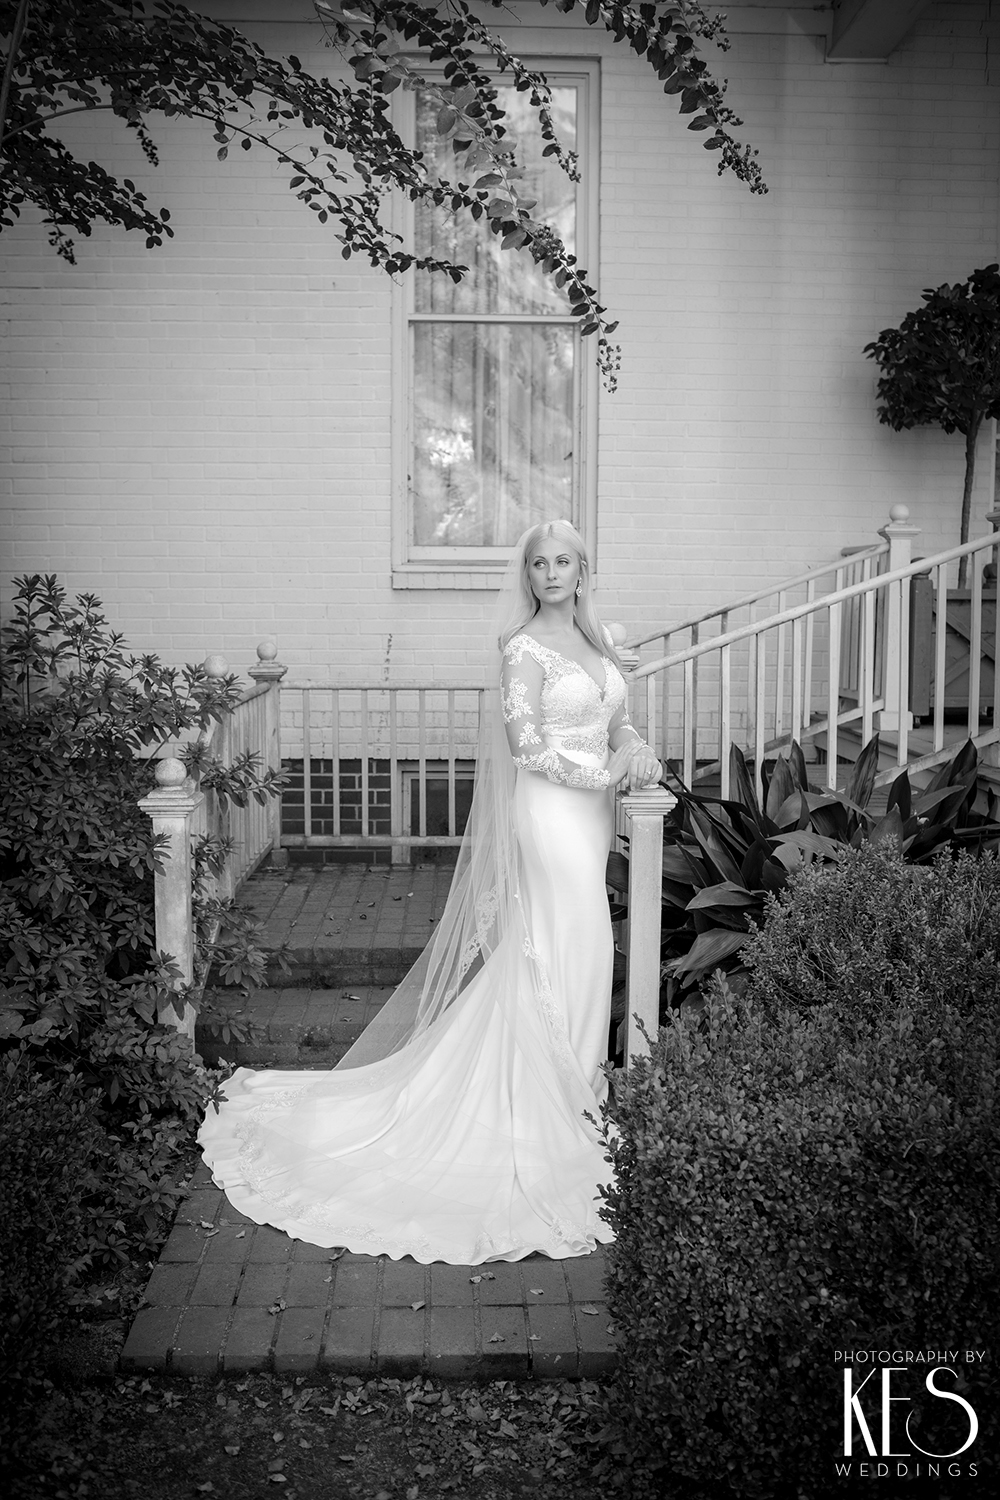 Marlsgate_Bridals_KES_Weddings_3.JPG